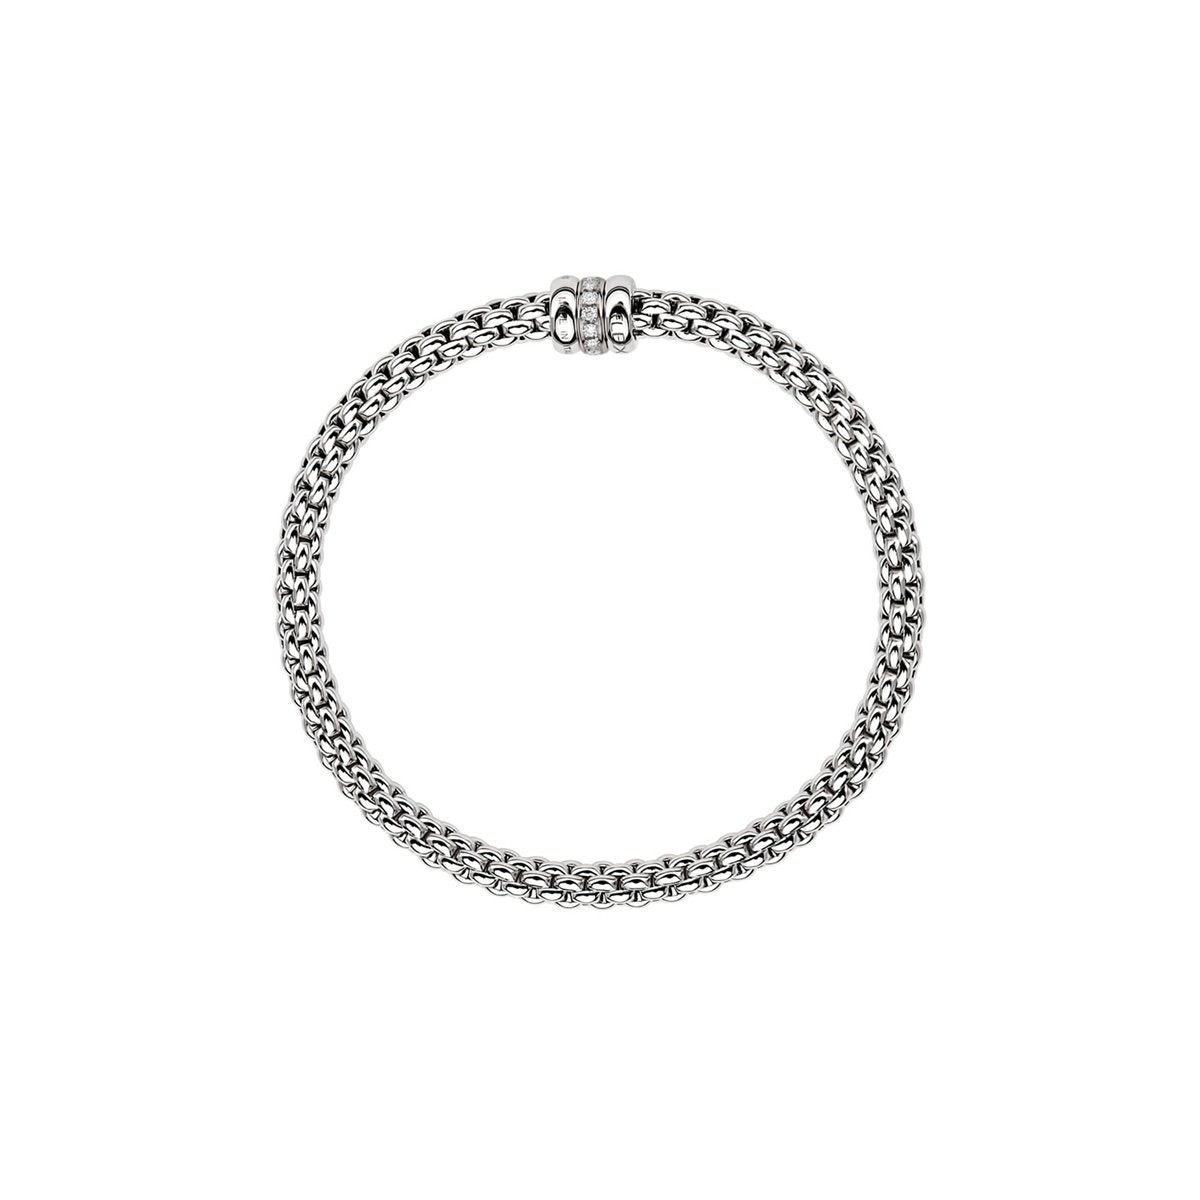 Fope Solo Flex'it 18ct White Gold Bracelet with Diamond Rondel-Hamilton & Inches